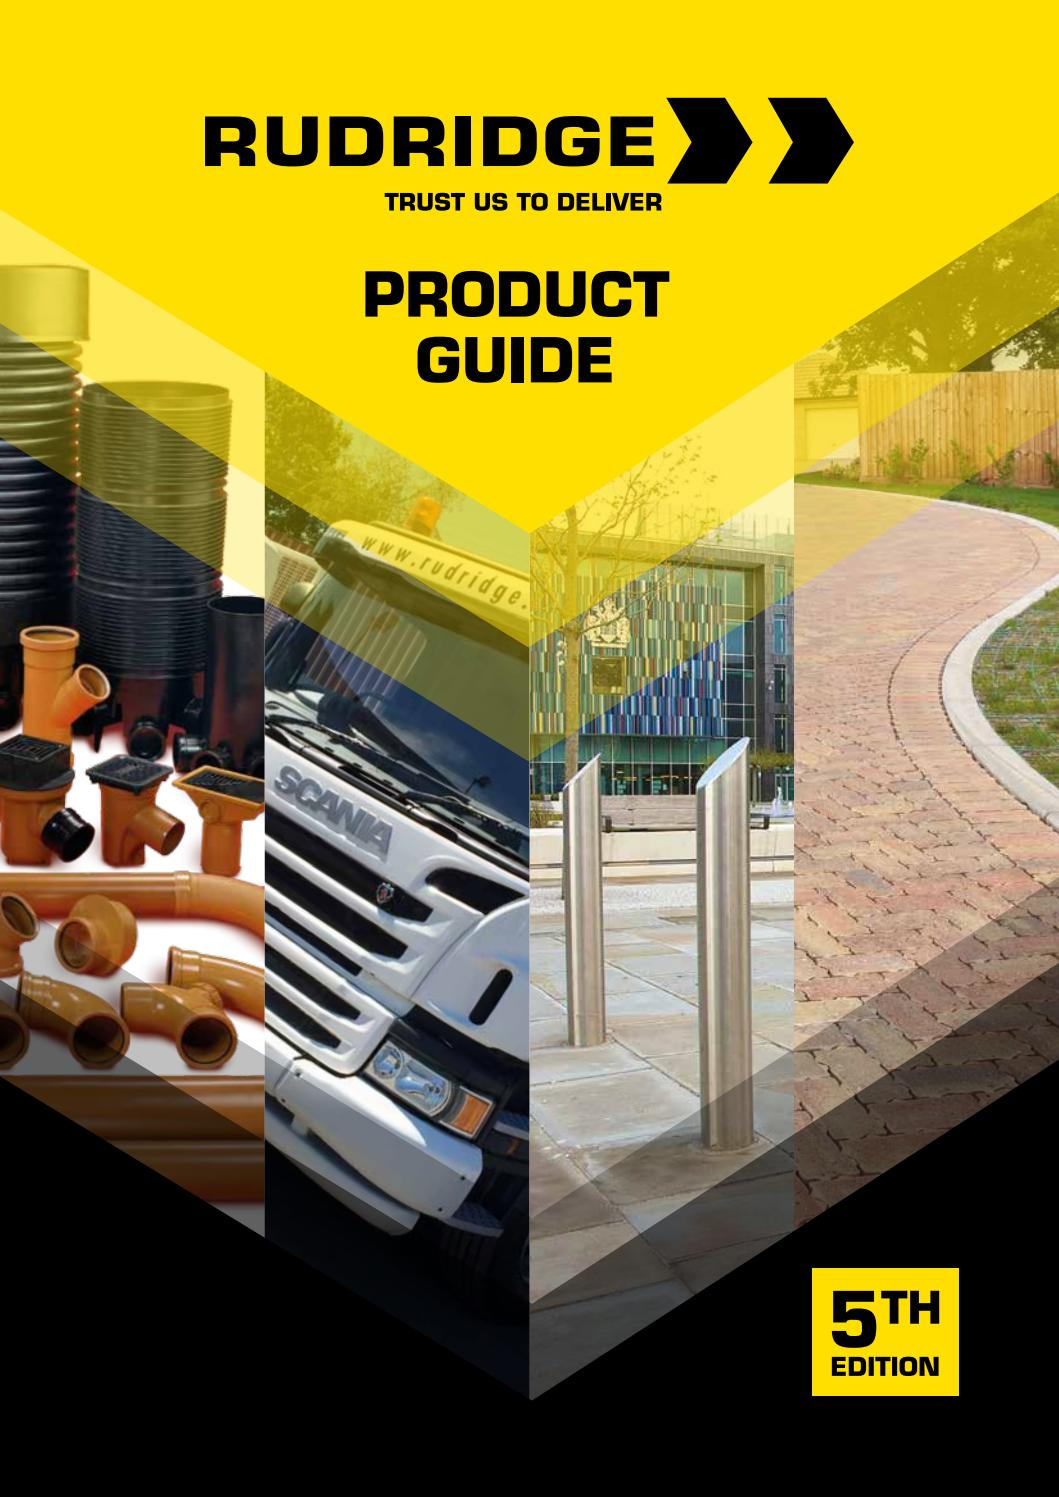 Rudridge Product Guide 5th Edition By Graham Walker Issuu Hko 186 Hydraulic Punch 1 2 2in Ridgid 23477